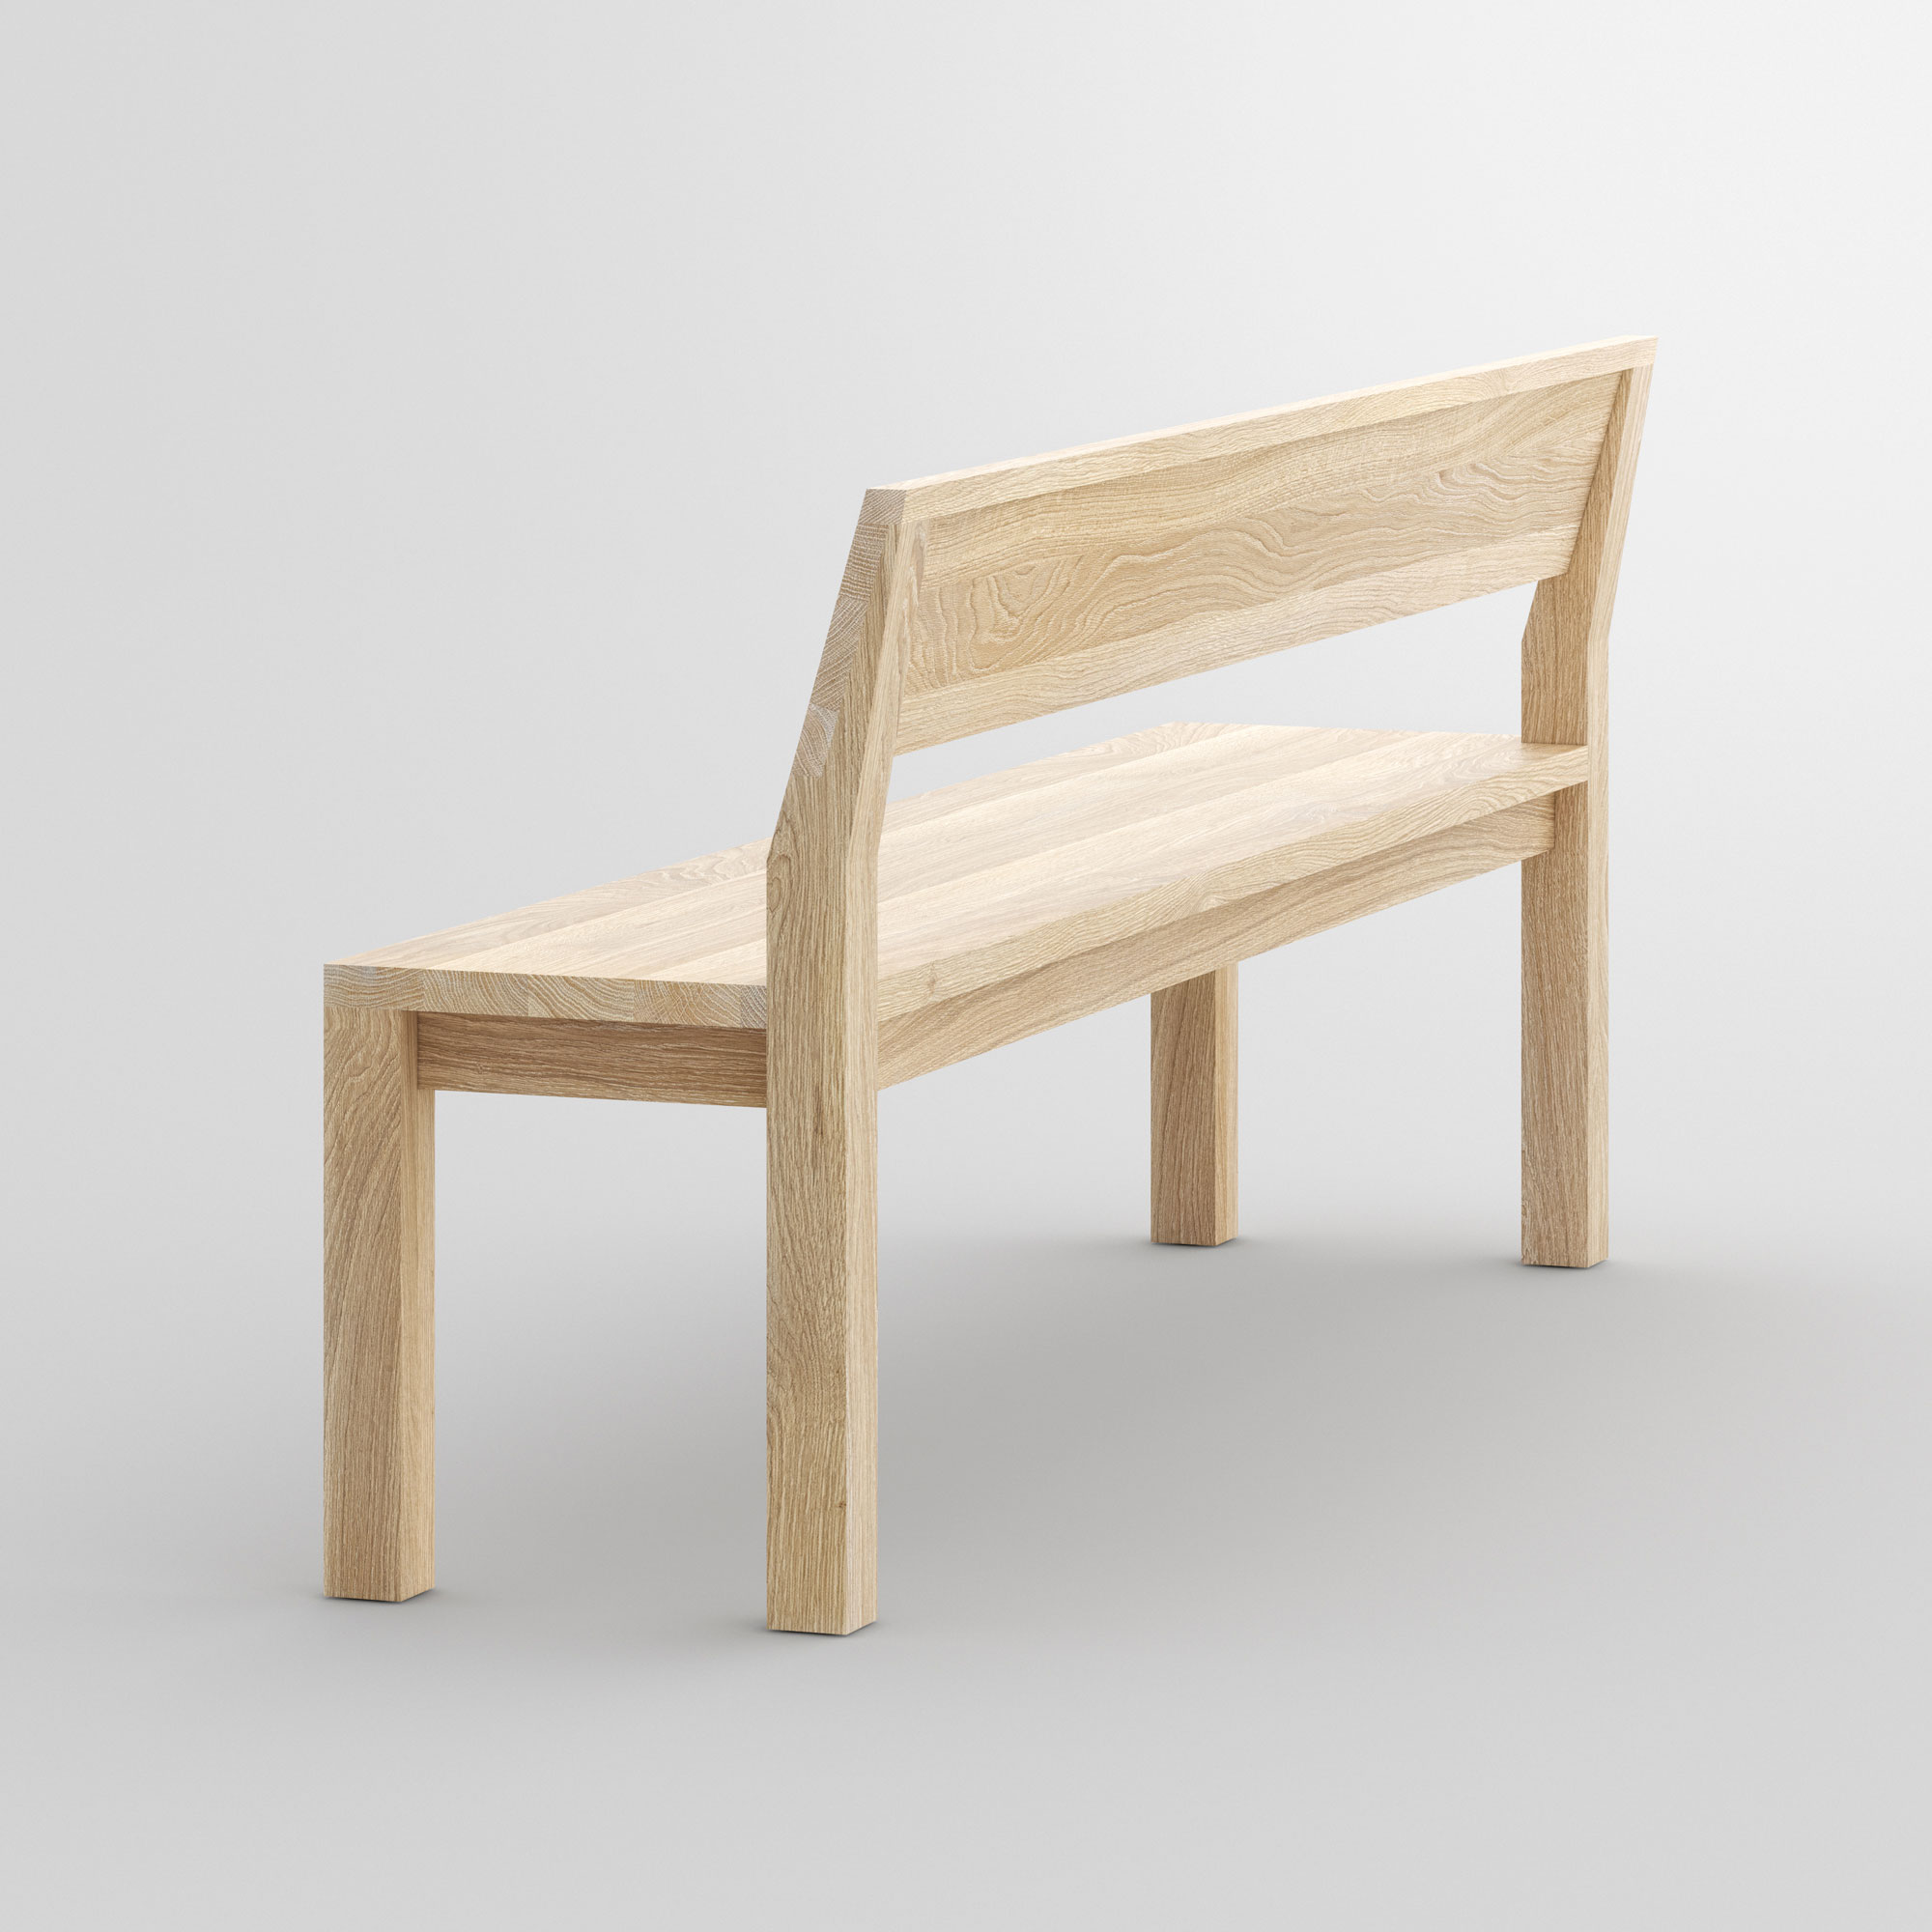 Bench with Backrest CUBUS RL cam1 custom made in solid wood by vitamin design